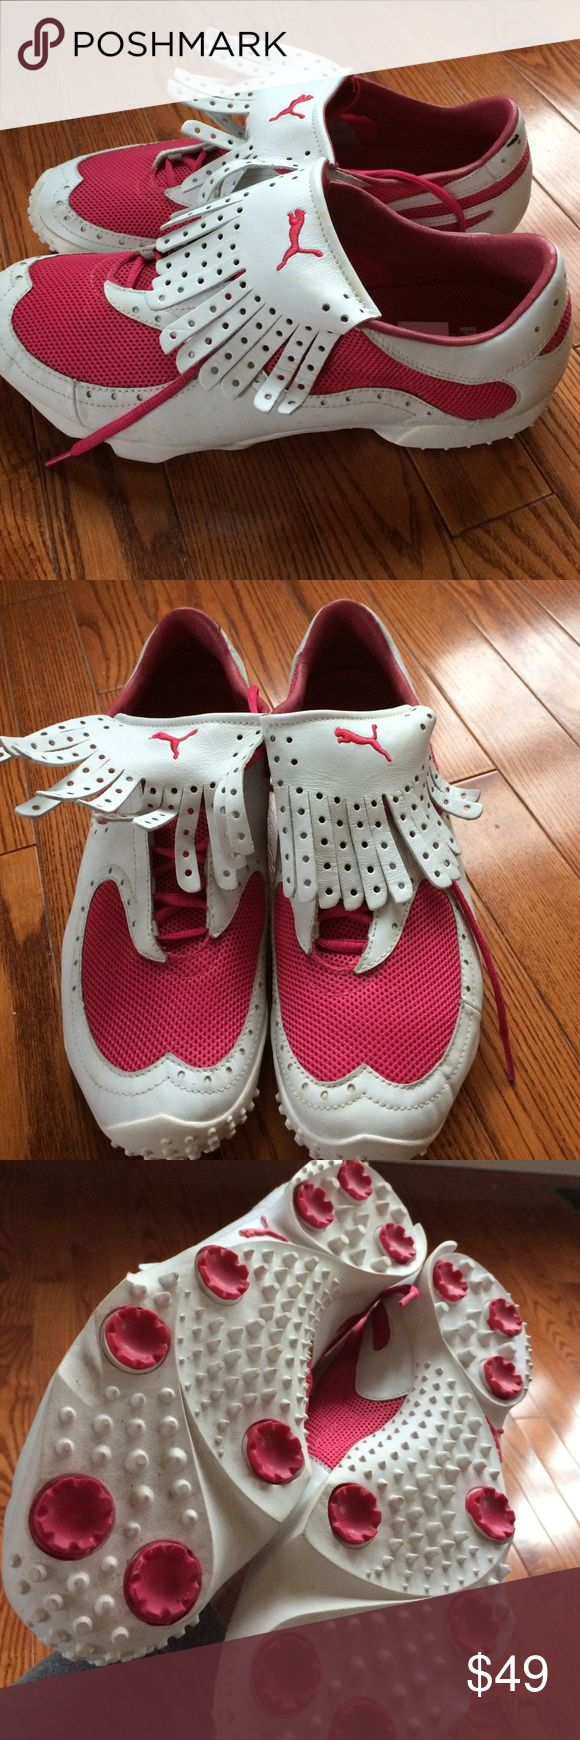 Puma Ladies golf shoes Pretty in pink!!!! Practical, lovely, ladies golf shoes. Brand NWT. Size 10.5. Leather upper and liner with textile. Rubber soles. Puma Shoes